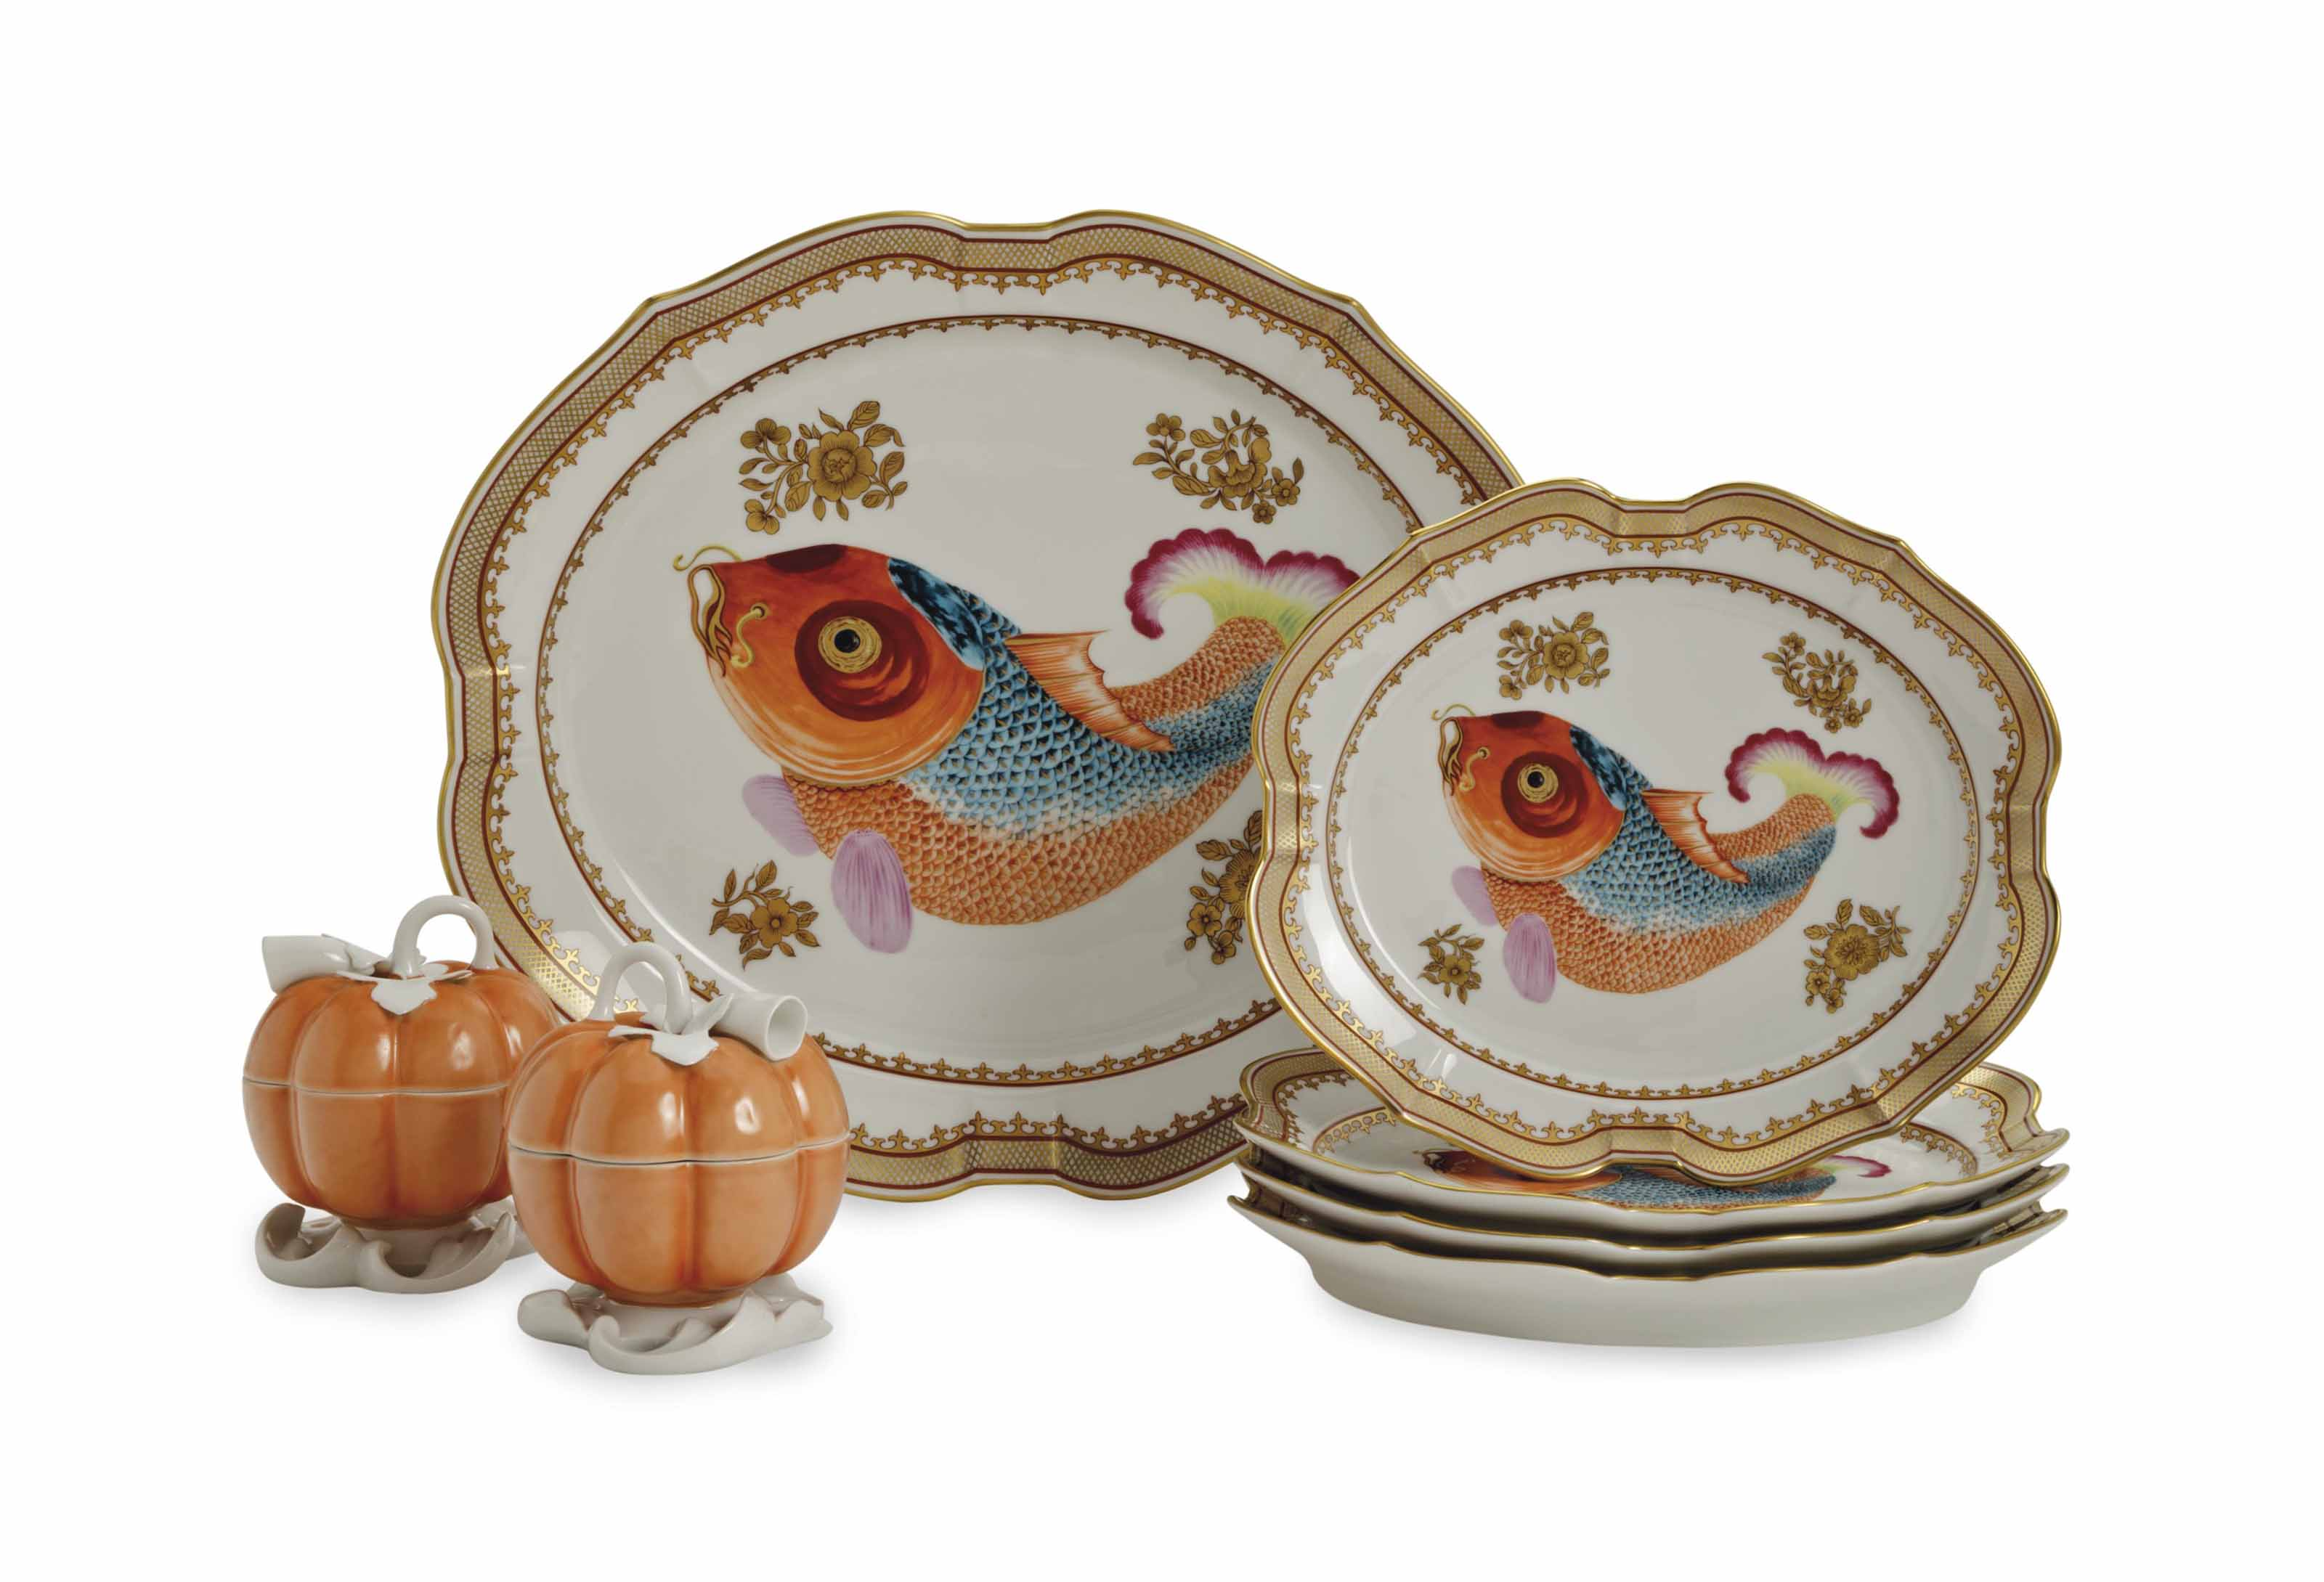 A CHINESE EXPORT-STYLE PORCELAIN TABLE SERVICE,